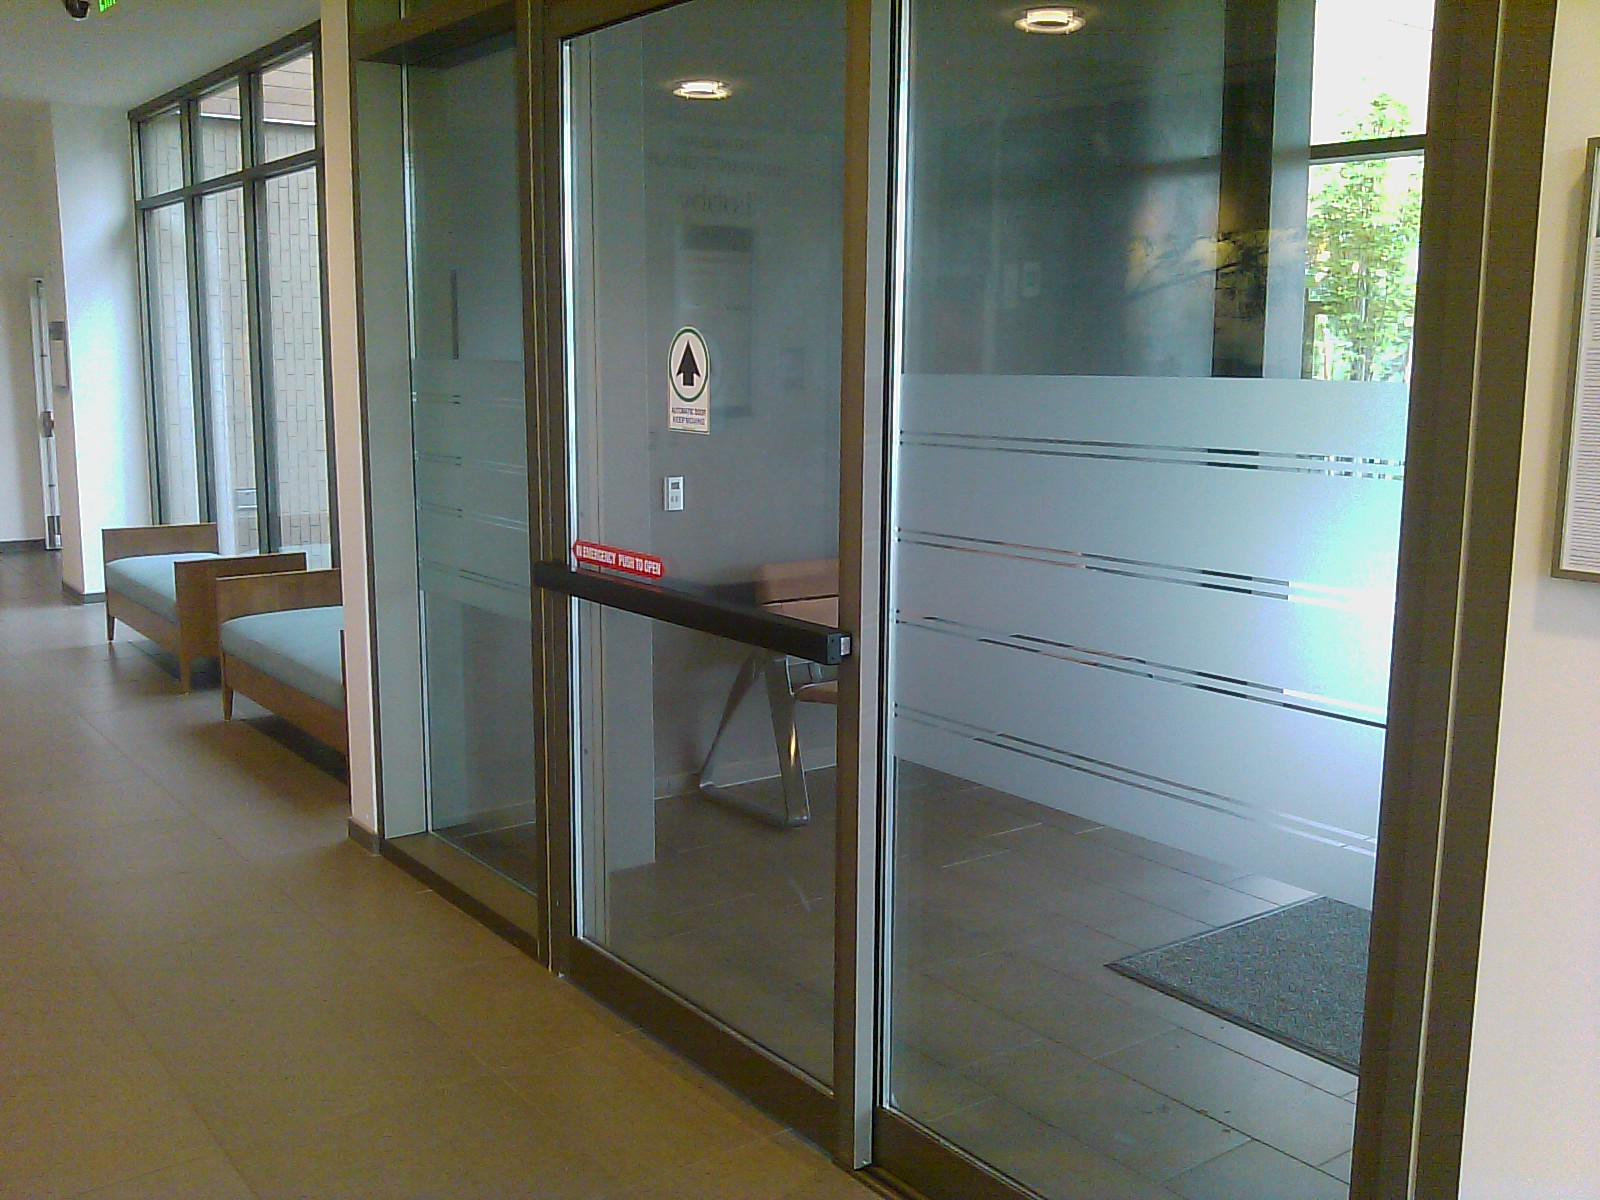 3M Dusted Crystal Archives  SeaTac Eco Friendly Window Films Coatings Seattle Tacoma Bellevue